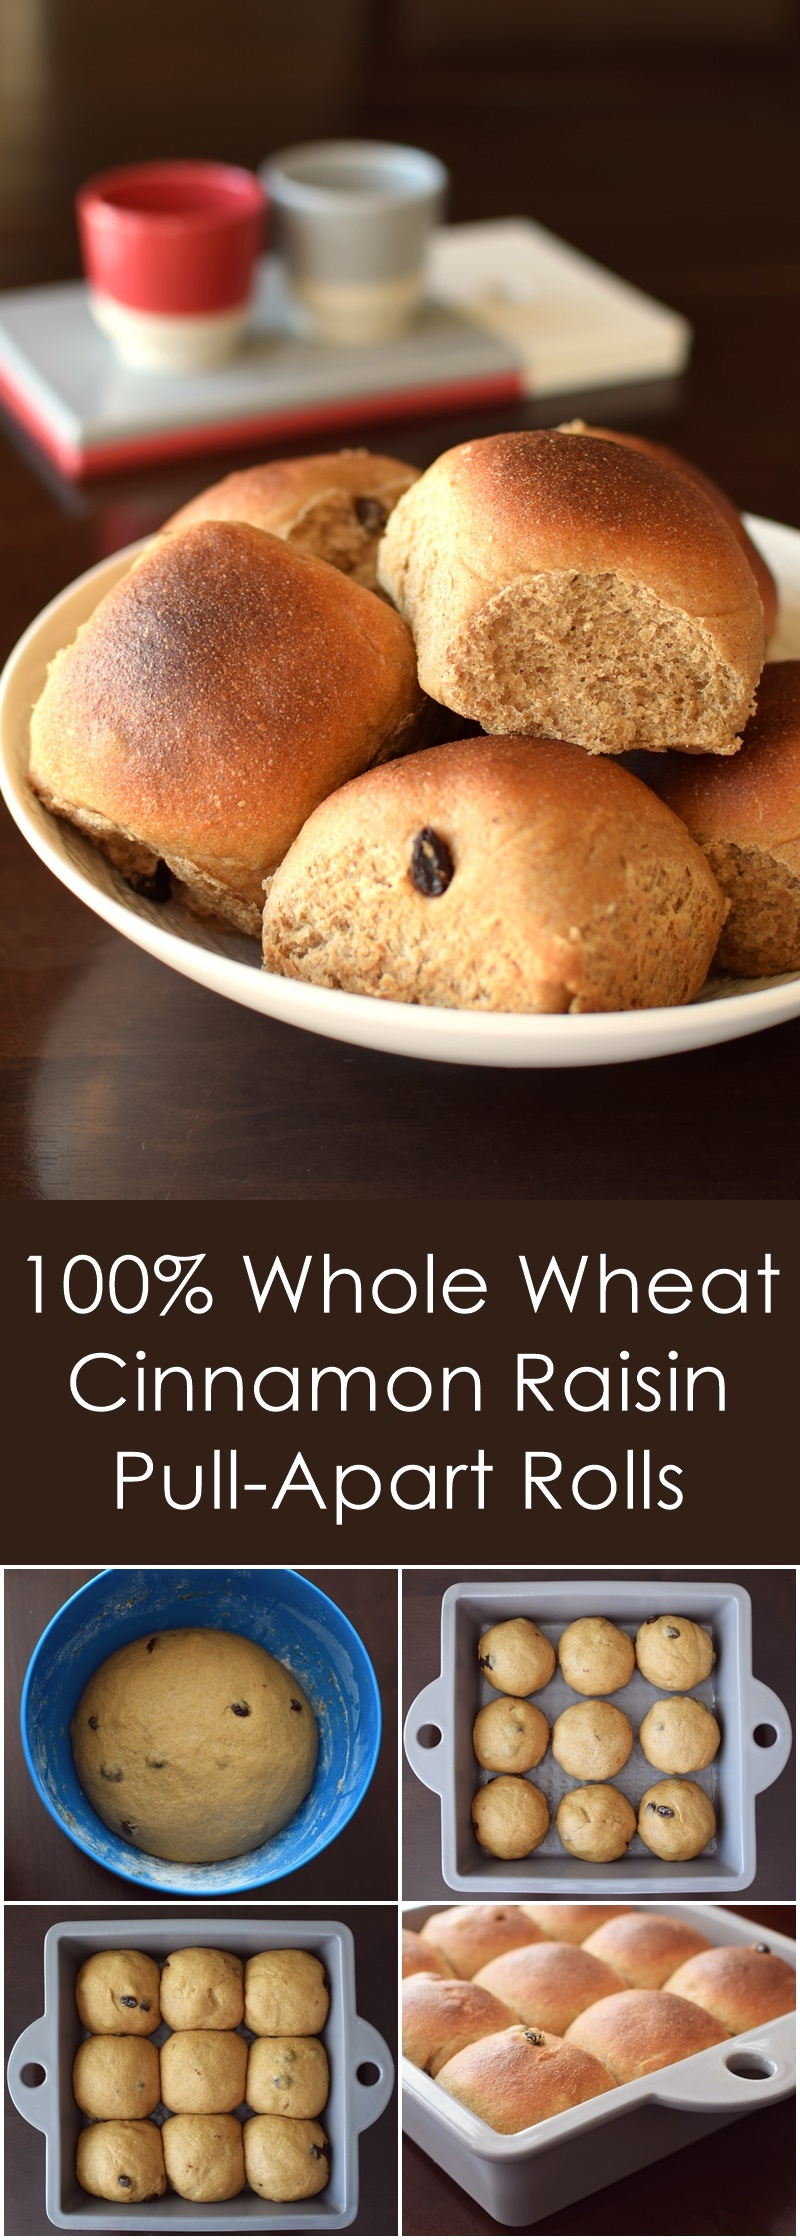 100% Whole Wheat Cinnamon Raisin Rolls Recipe - perfect, tender, dairy-free & vegan pull-aparts